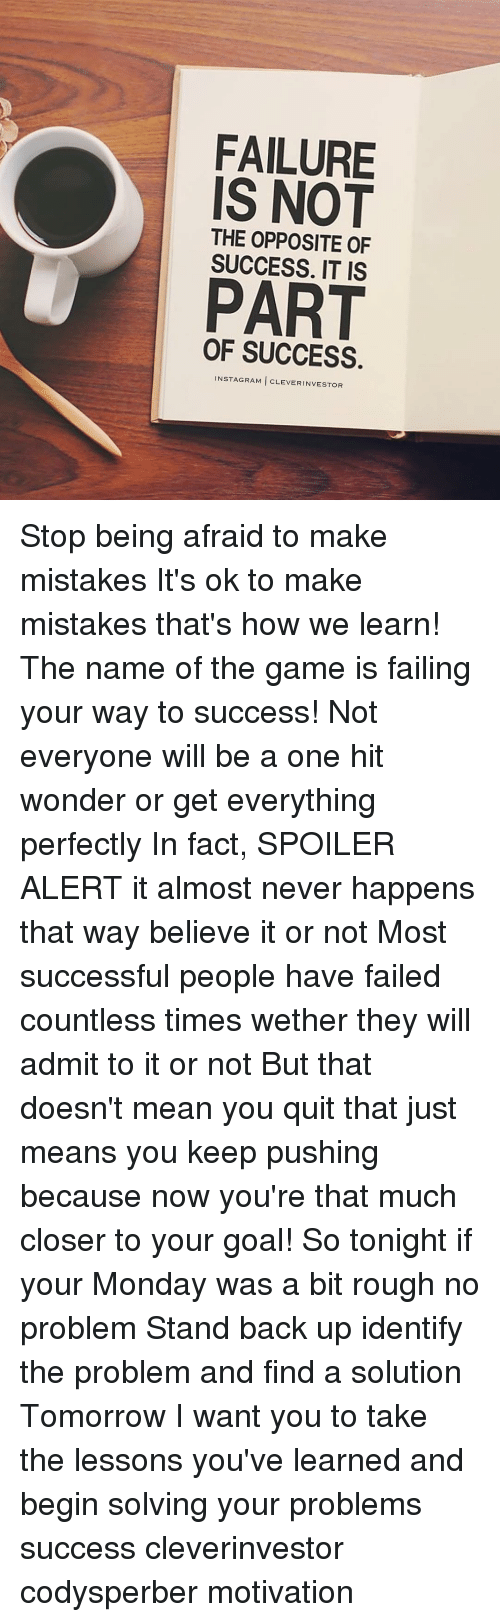 Instagram, Memes, and The Game: FAILURE  IS NOT  THE OPPOSITE OF  SUCCESS. IT IS  PART  OF SUCCESS  INSTAGRAM CLEVER INVESTOR Stop being afraid to make mistakes It's ok to make mistakes that's how we learn! The name of the game is failing your way to success! Not everyone will be a one hit wonder or get everything perfectly In fact, SPOILER ALERT it almost never happens that way believe it or not Most successful people have failed countless times wether they will admit to it or not But that doesn't mean you quit that just means you keep pushing because now you're that much closer to your goal! So tonight if your Monday was a bit rough no problem Stand back up identify the problem and find a solution Tomorrow I want you to take the lessons you've learned and begin solving your problems success cleverinvestor codysperber motivation